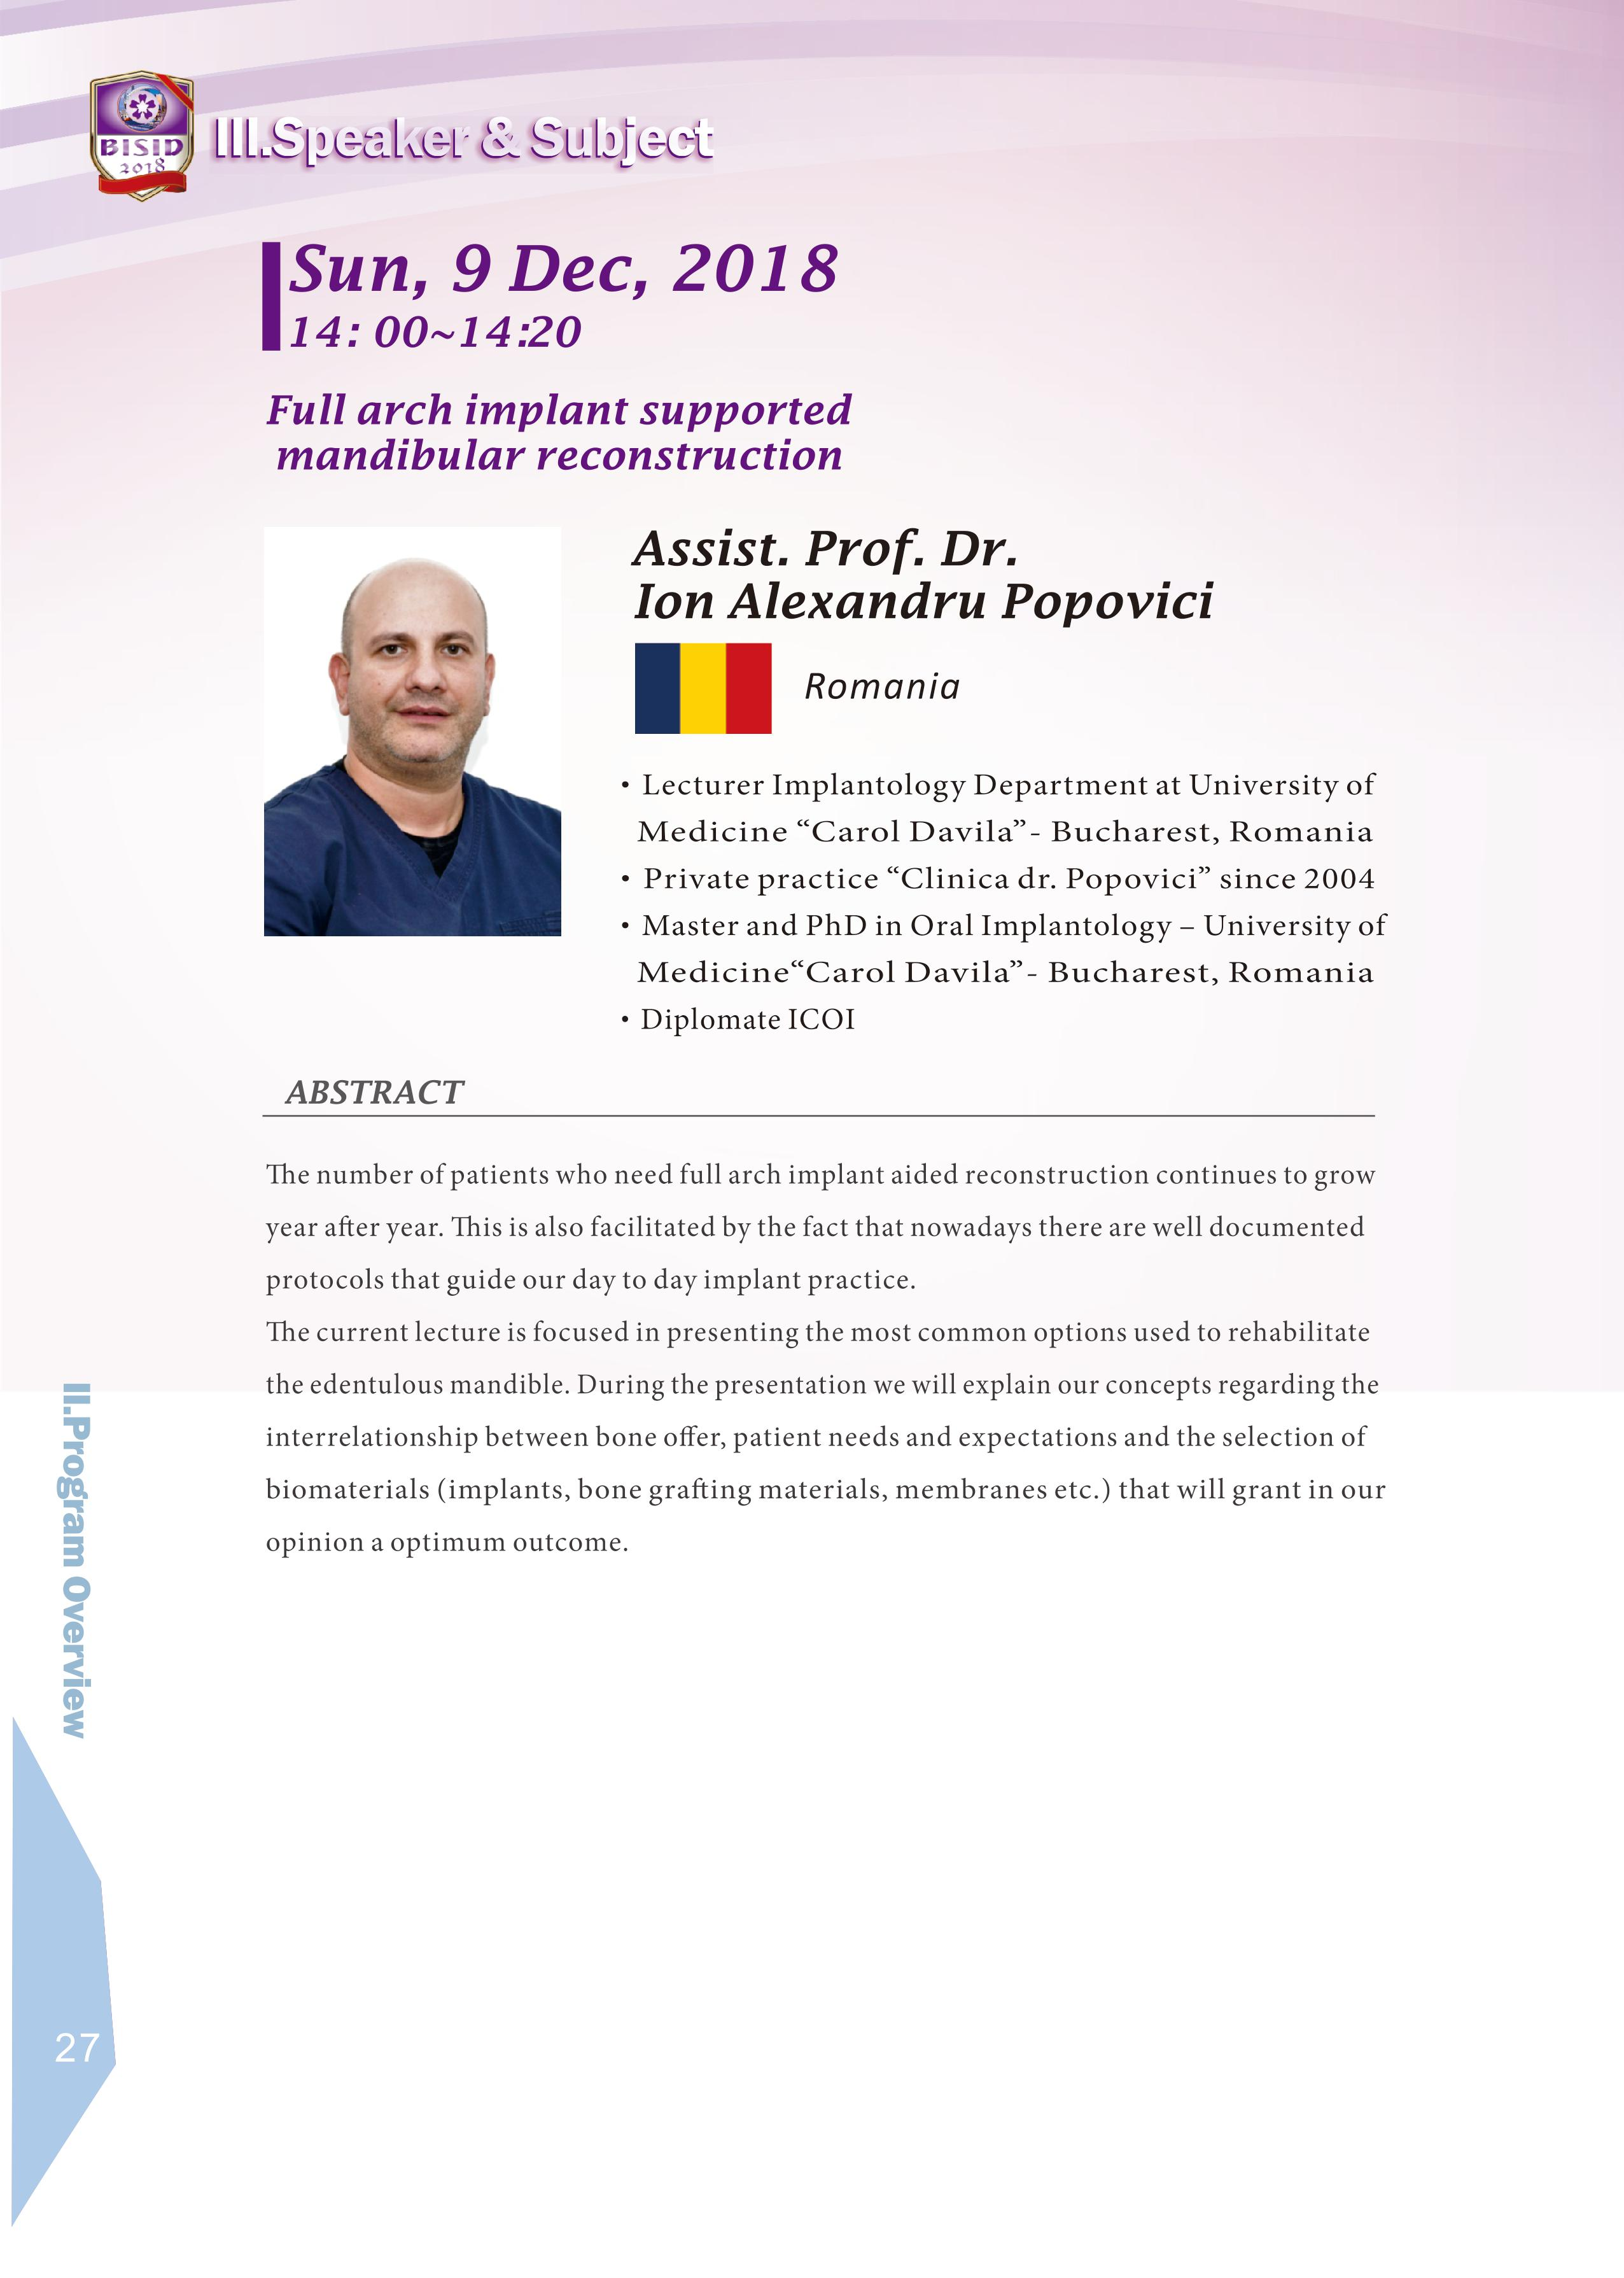 Biomate Internation Symposium of Implant Dentistry-Assist.Porf.Dr.Ion Alexandru Popovici